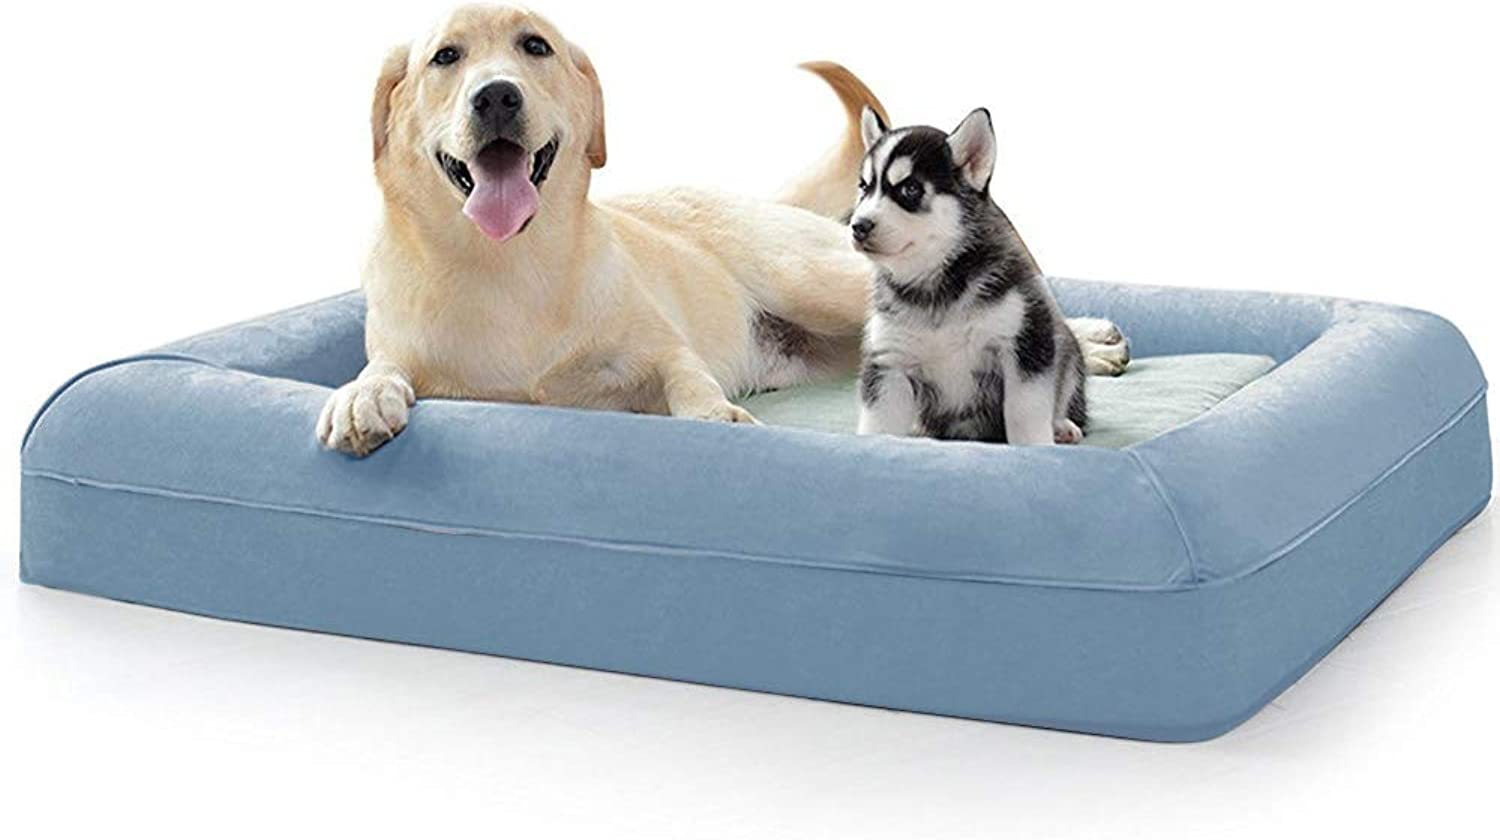 BG ARTTEX Orthopedic Memory Foam Dog Bed,Pet Sofa,Durable Removable Dog Cover